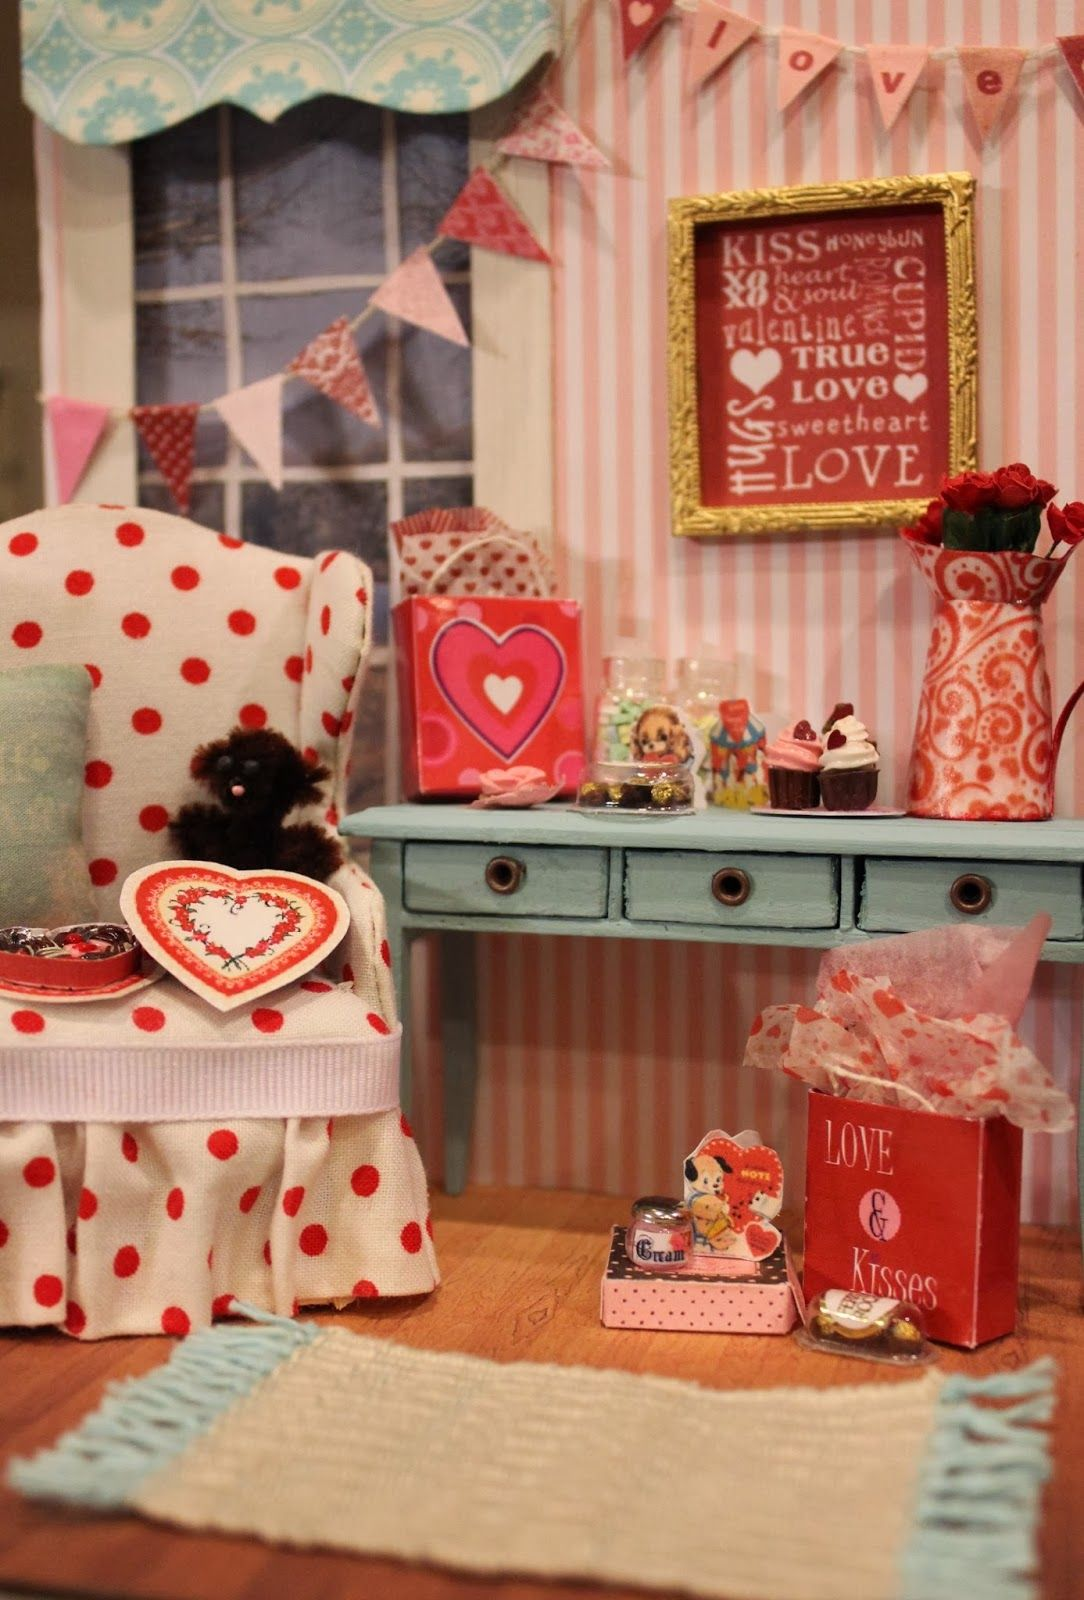 Miniature Dollhouse Valentine Card and Red Rose